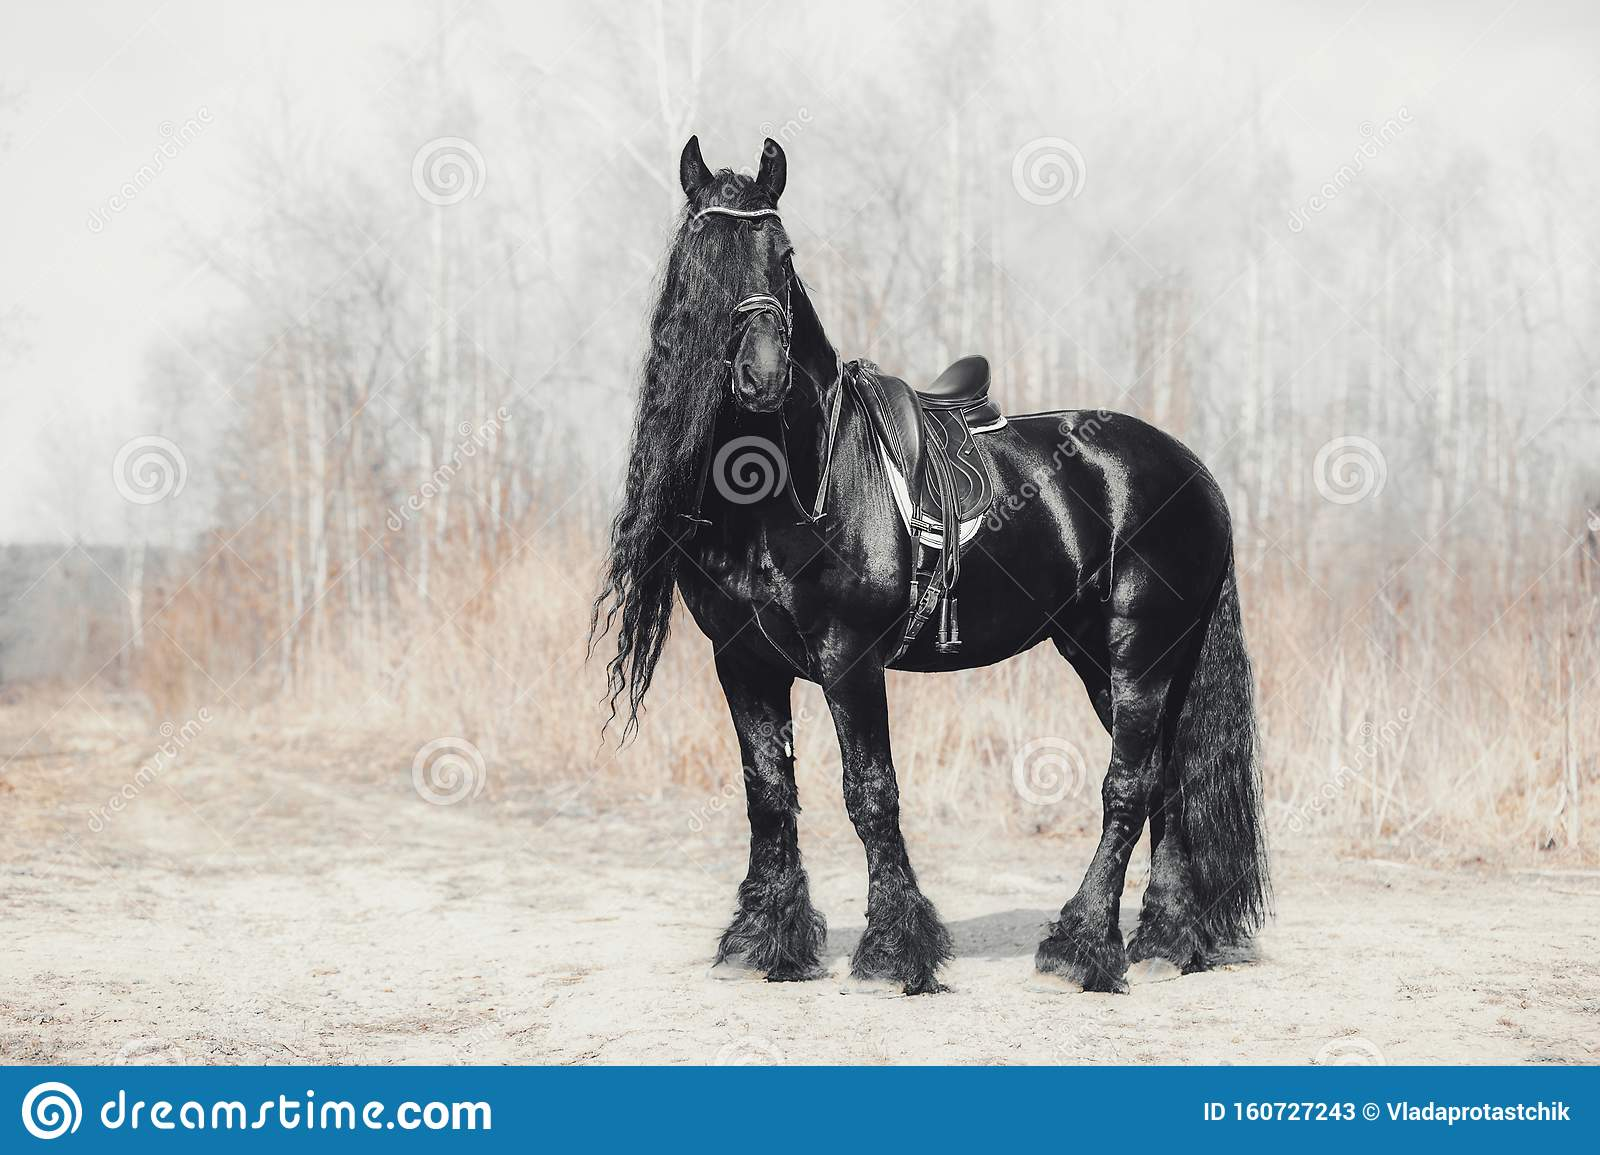 Stunning Friesian Stallion Horse In Spring Forest Stock Image Image Of Daytime Beautiful 160727243